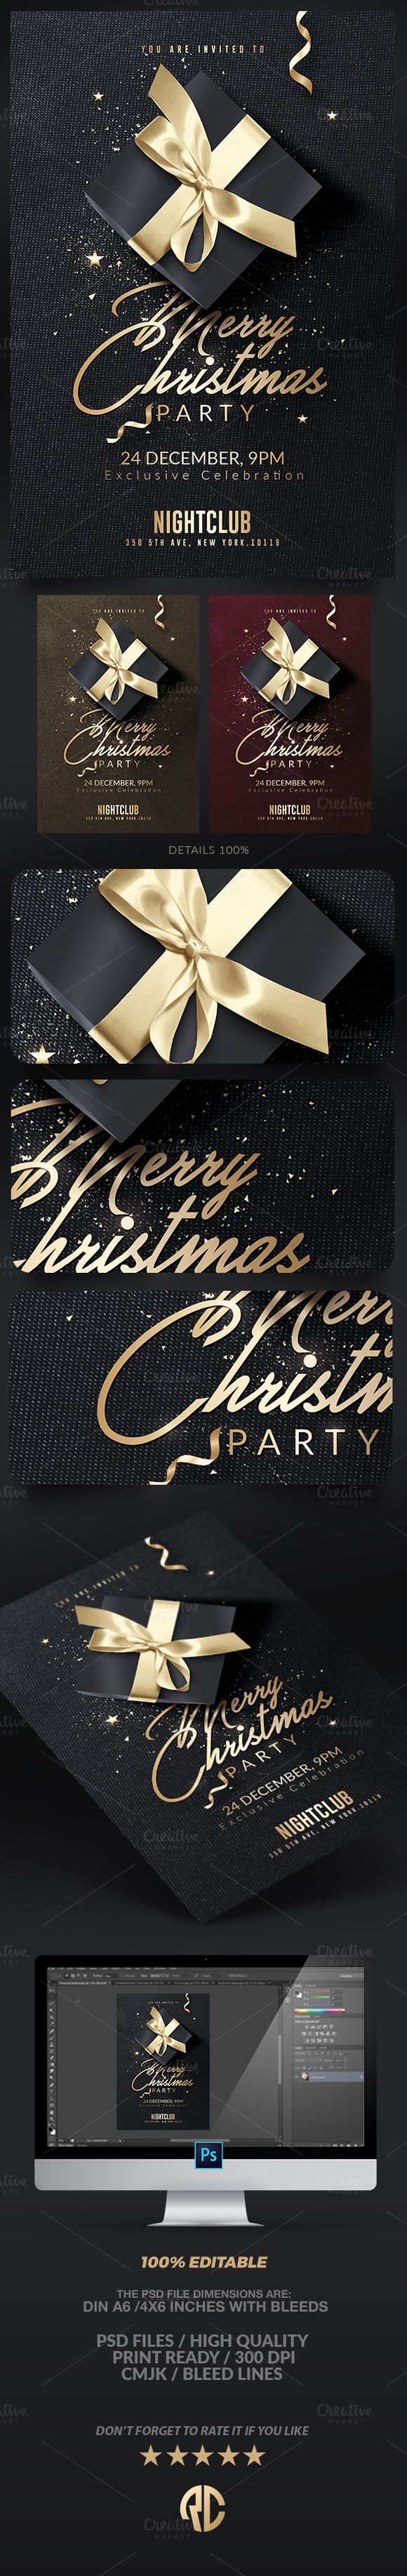 Classy Christmas Invitation | Flyer | Photoshop